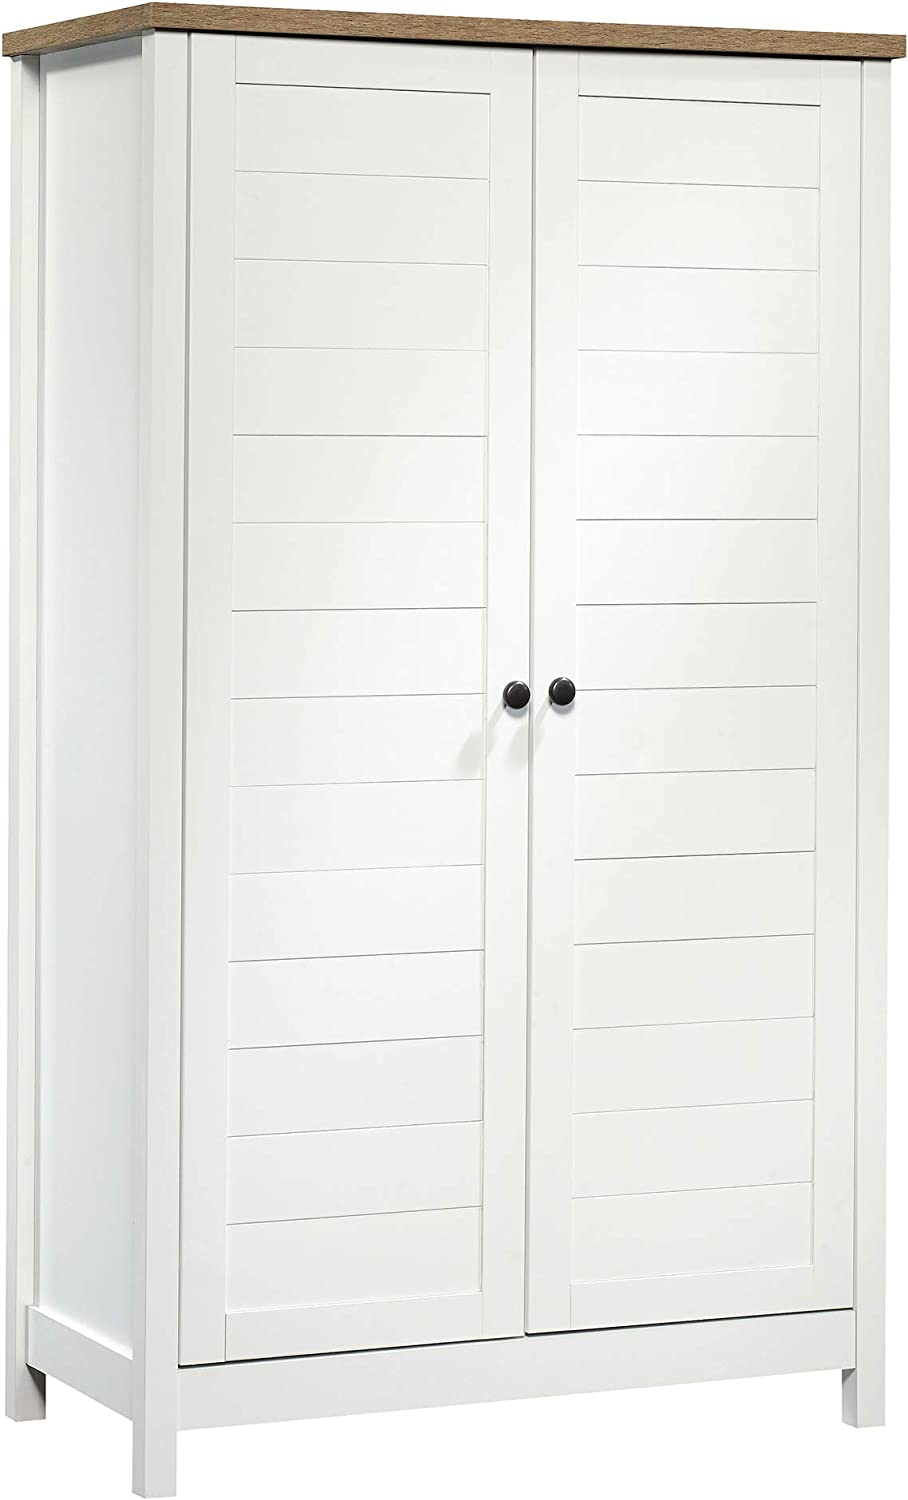 Sauder 423509 Cottage Road Storage Cabinet, Soft White Finish